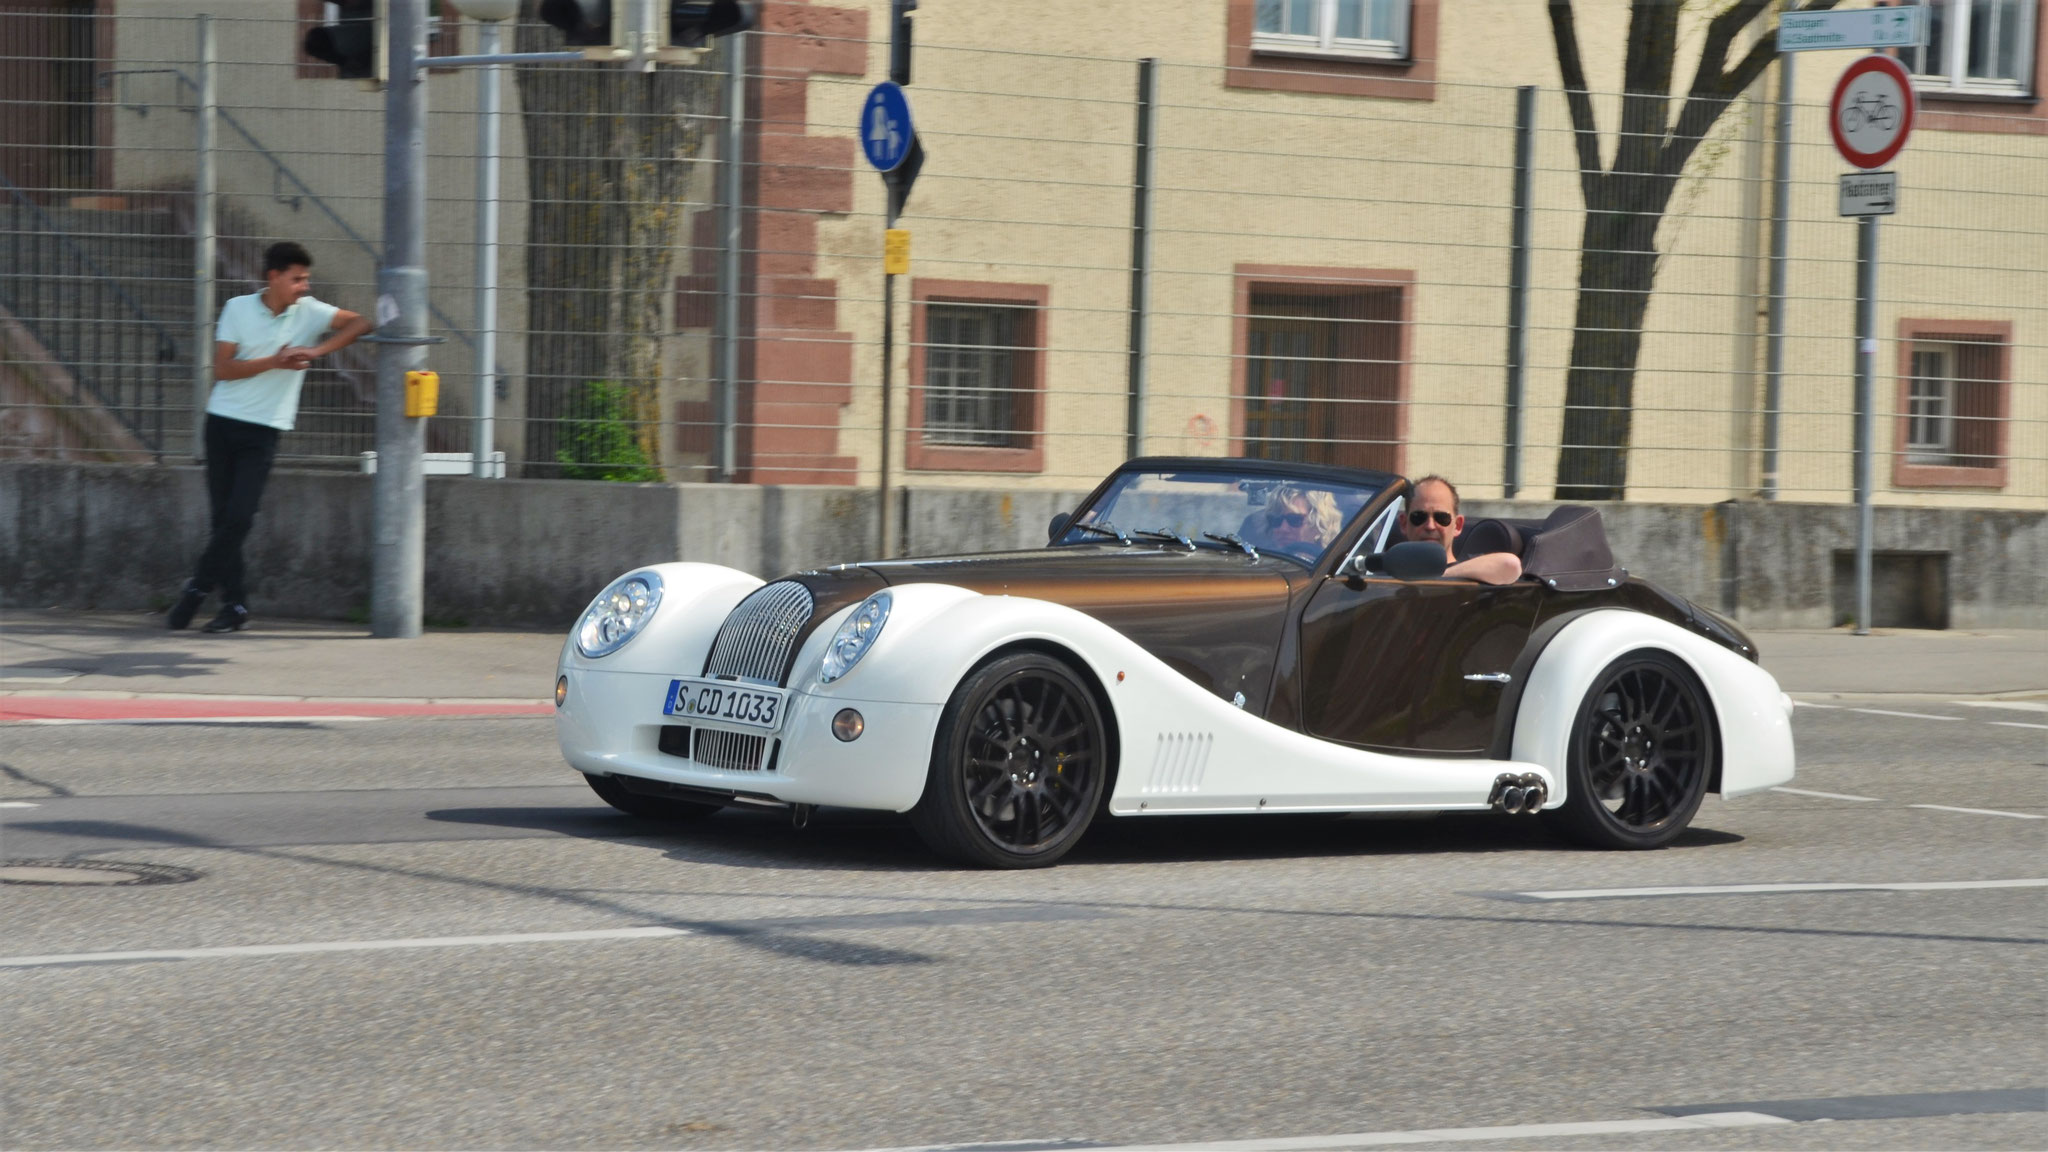 Morgan Aero Roadster - S-CD-1033